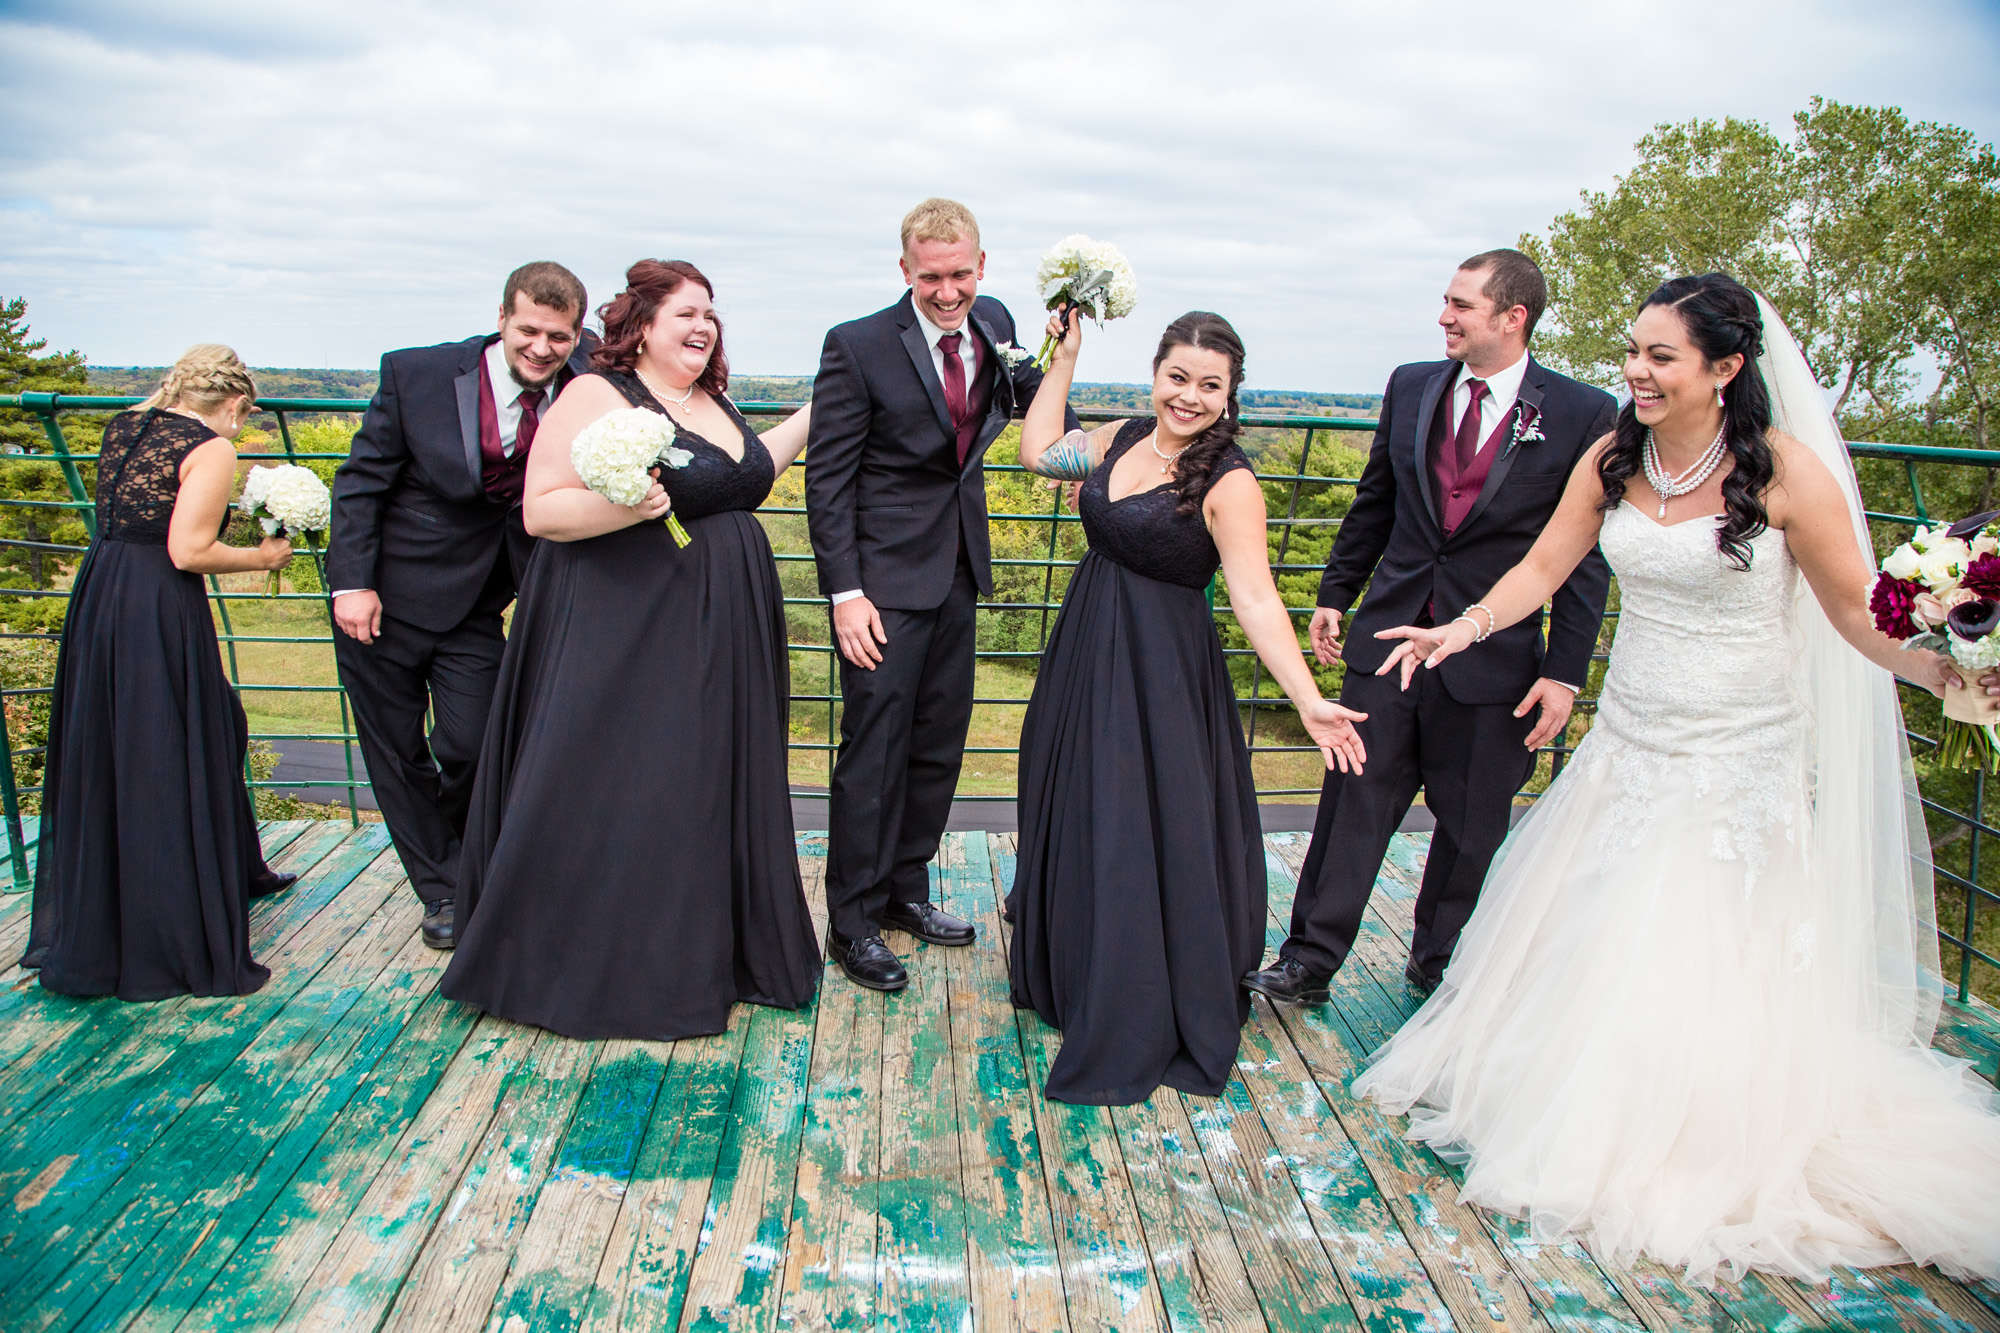 Kansas City wedding photography by Angie Harris Photography